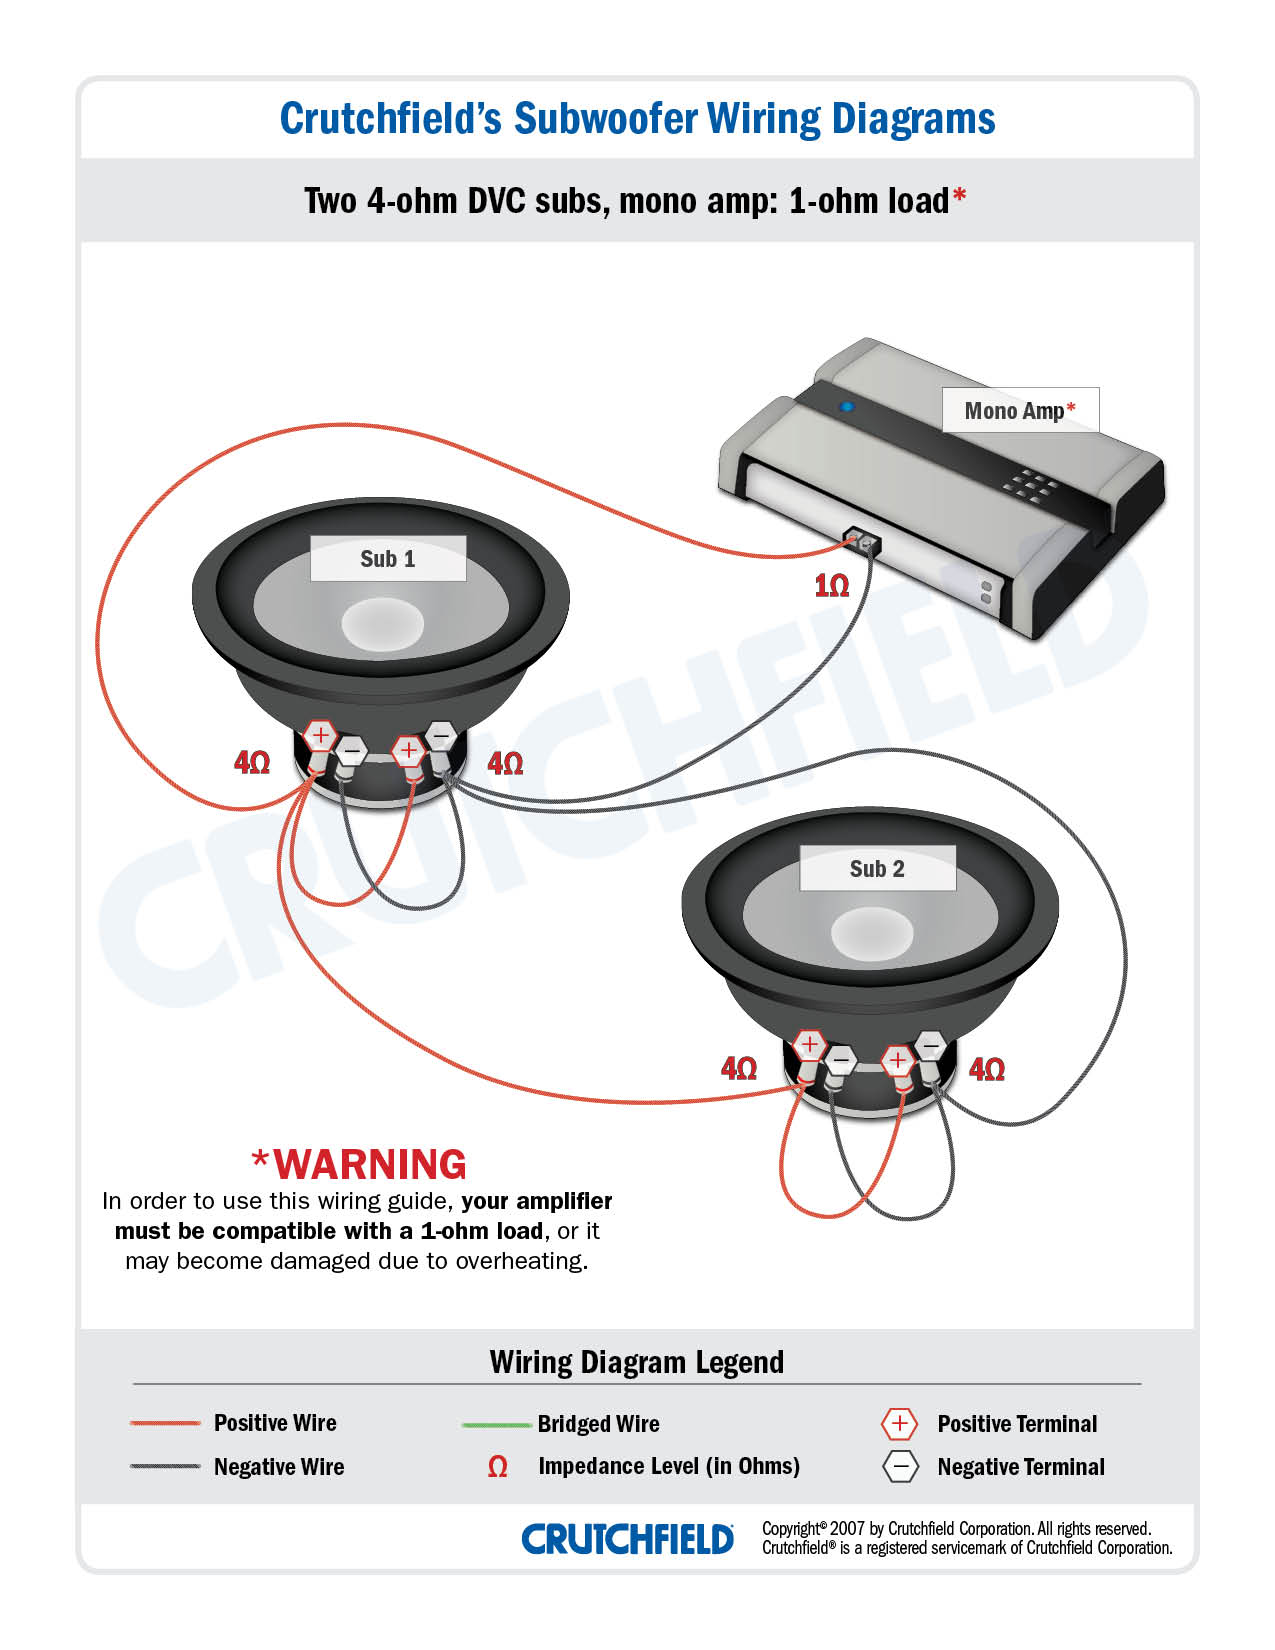 Groovy Subwoofer Wiring Diagrams How To Wire Your Subs Wiring Cloud Brecesaoduqqnet